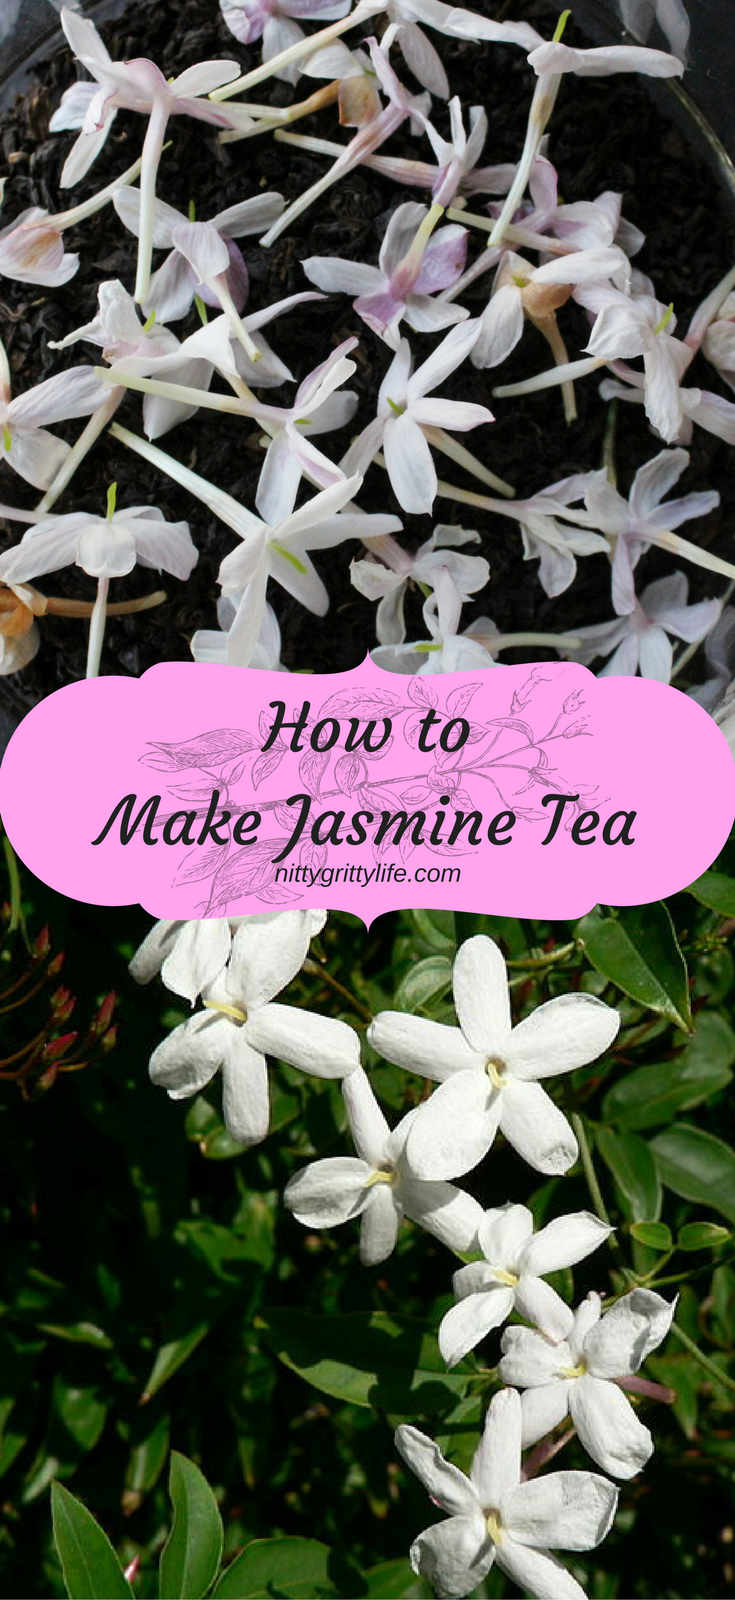 How to Make Jasmine Tea